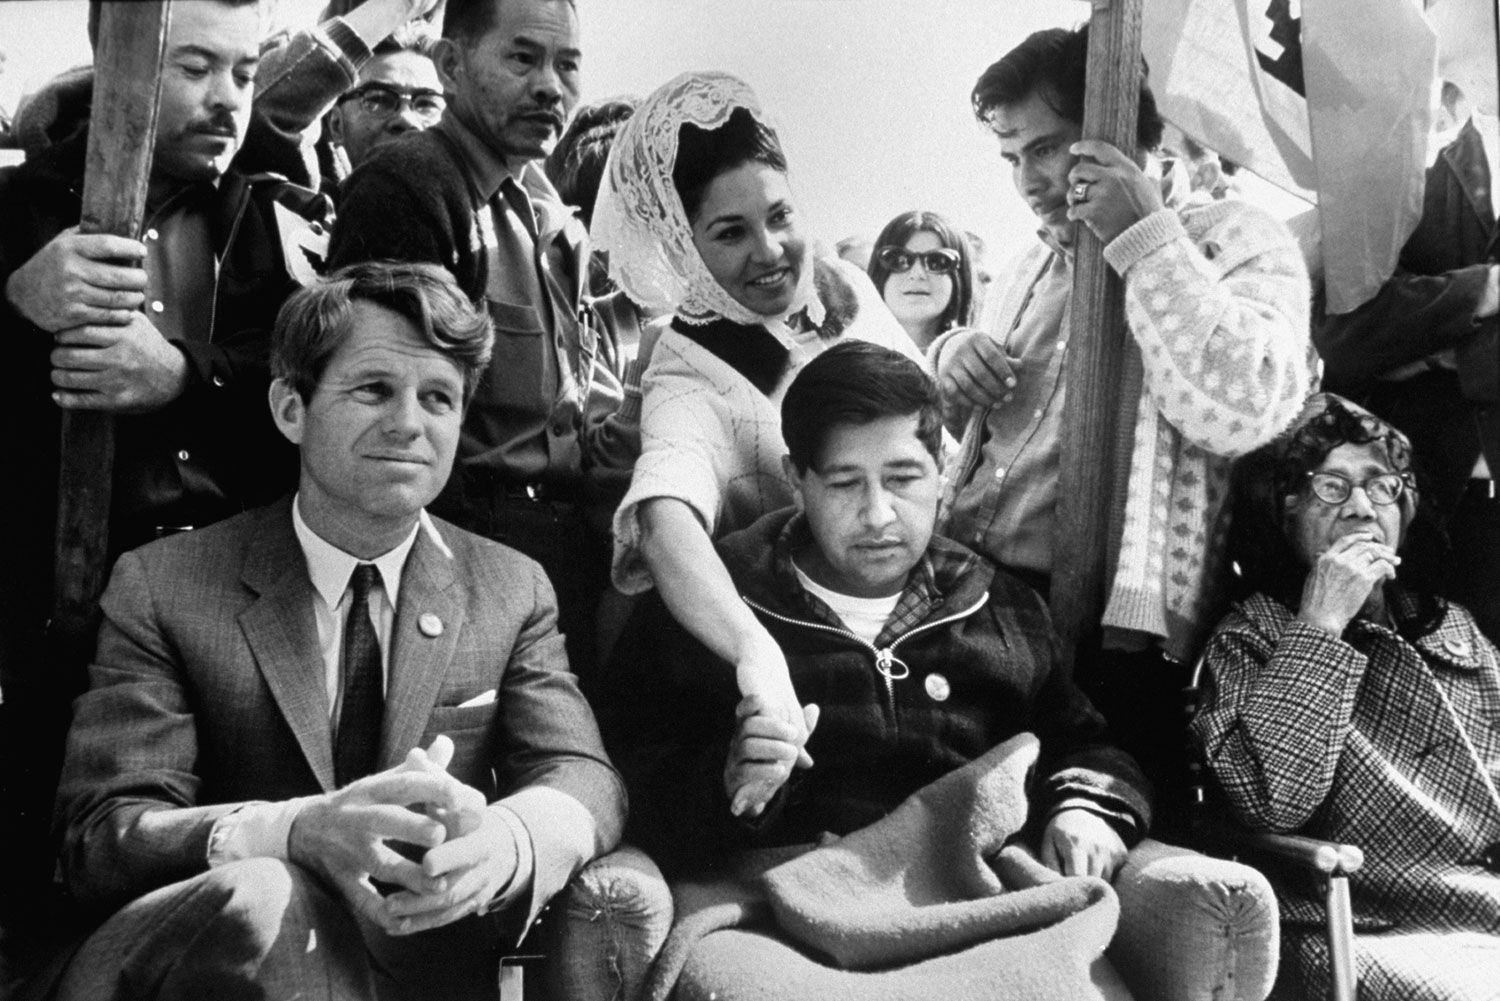 Robert F Kennedy Lends Moral Support To Striking Grape